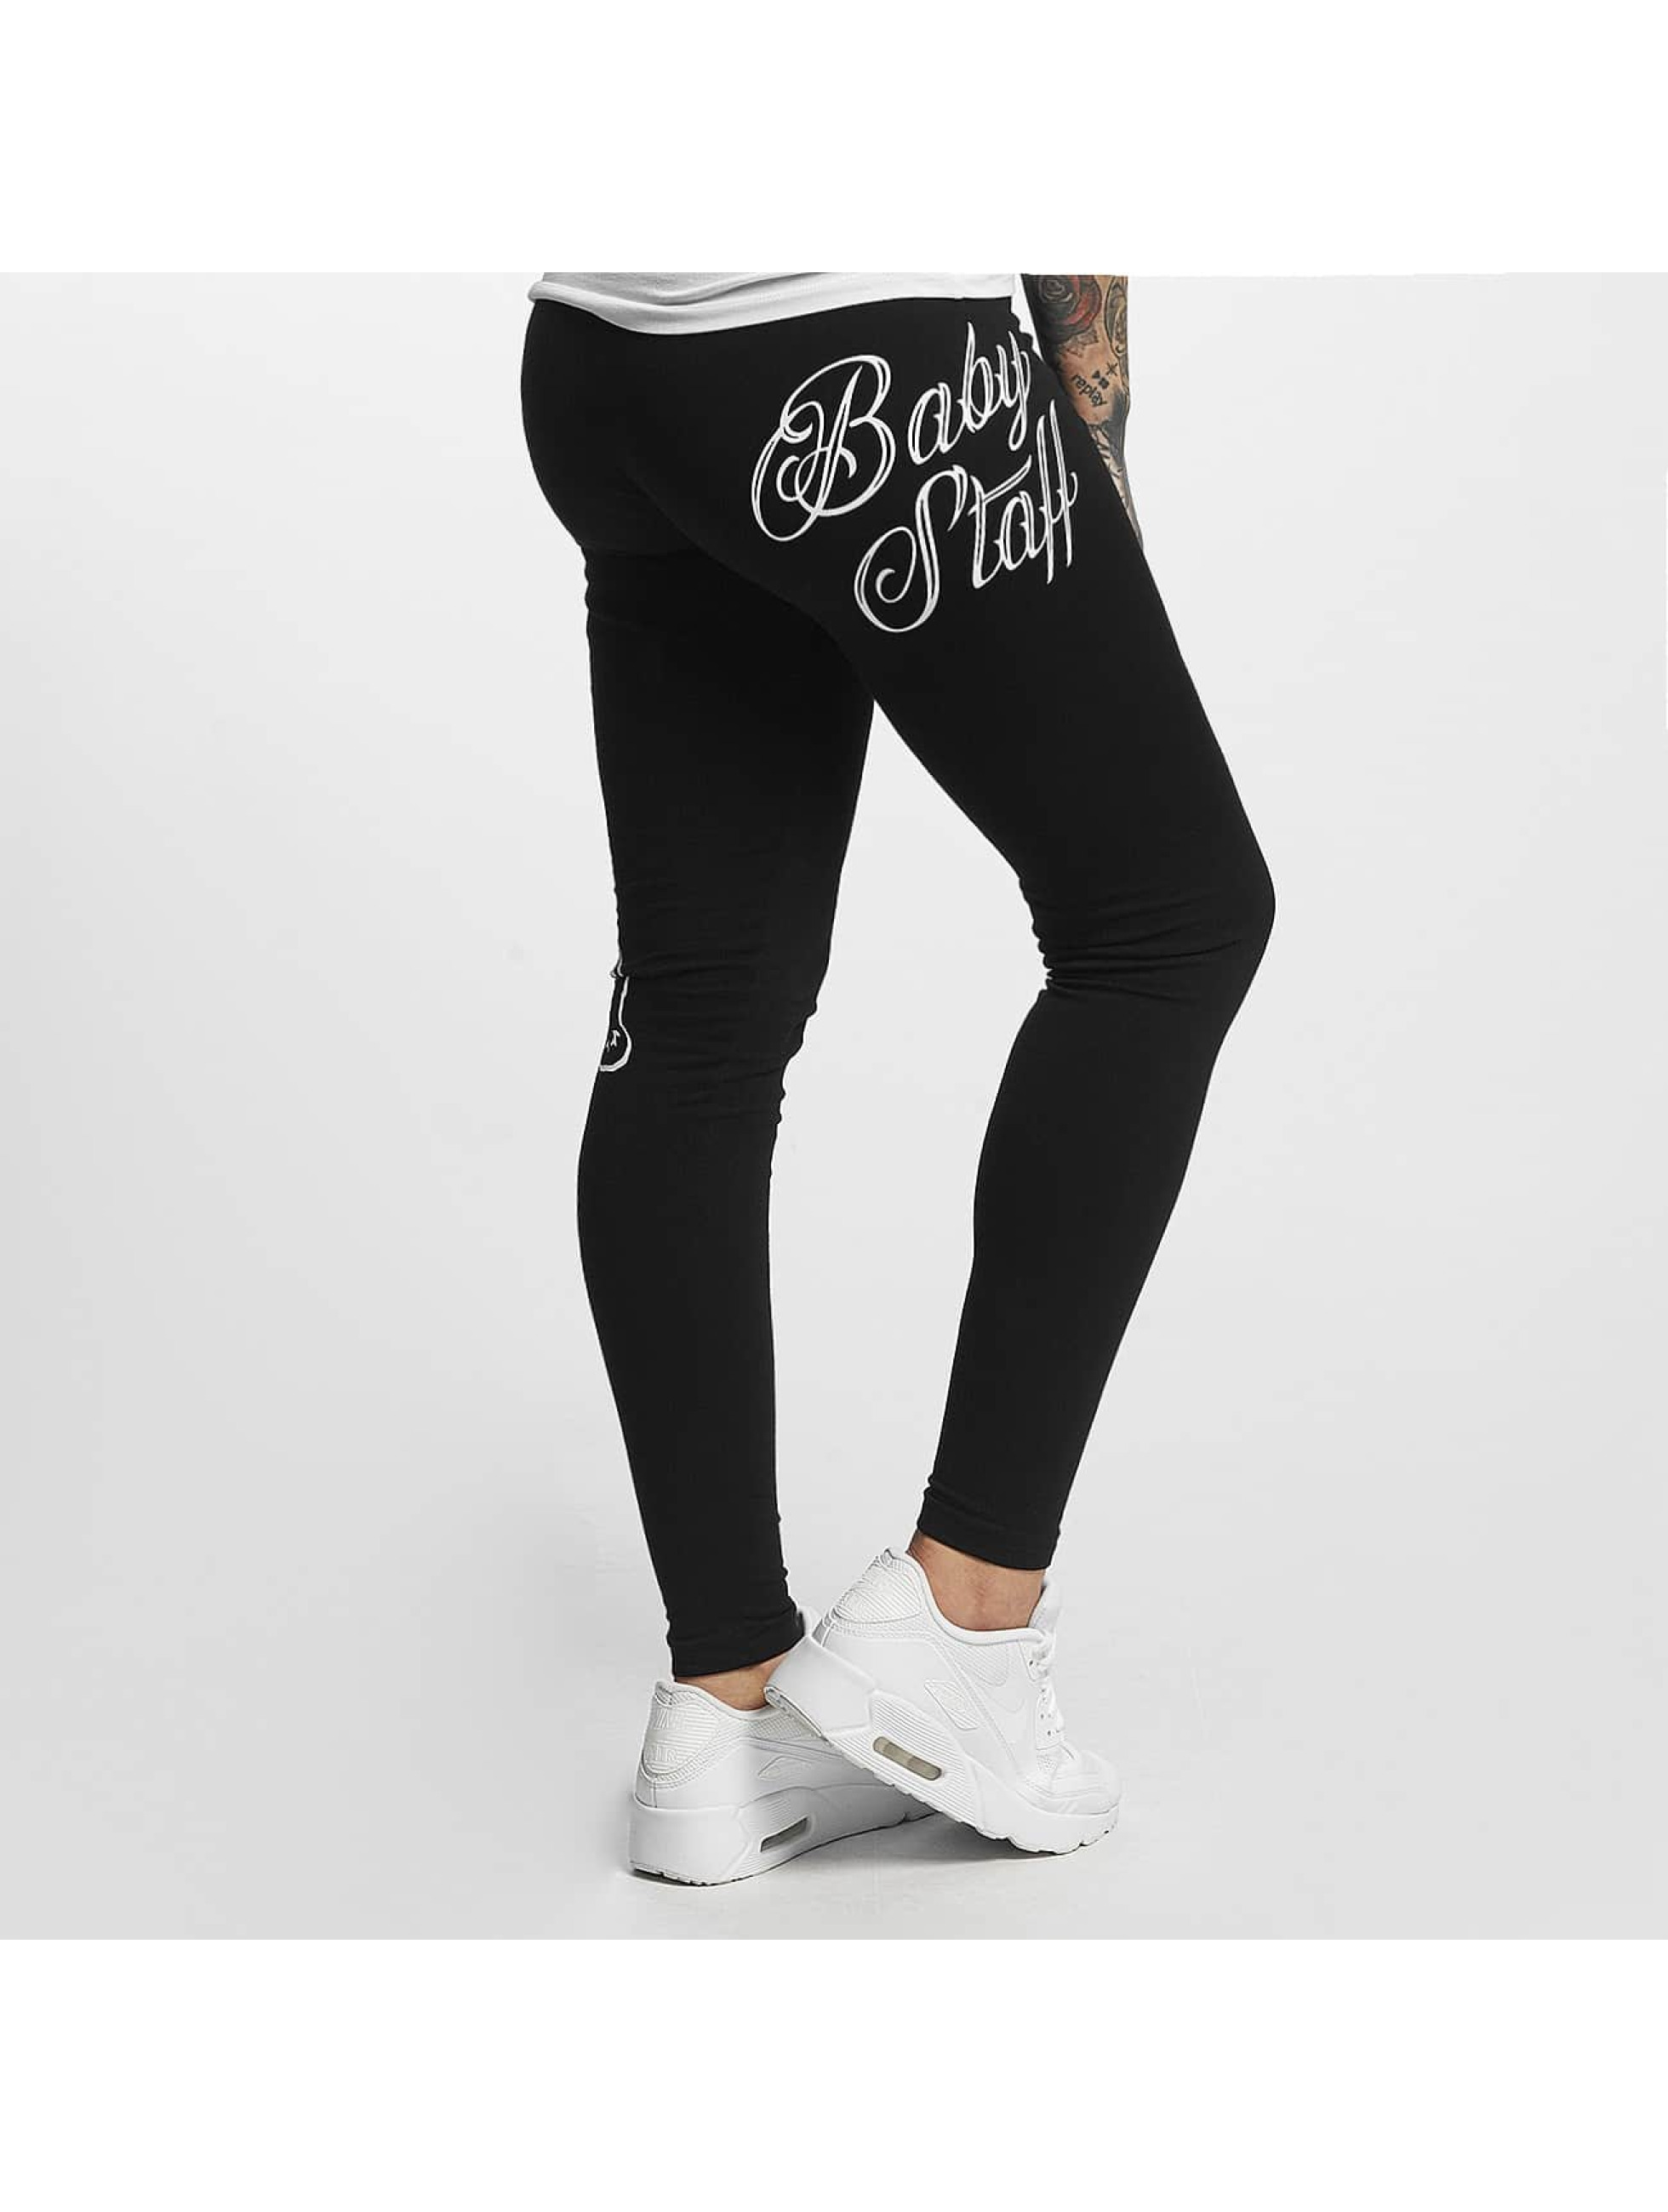 Babystaff Leggings/Treggings Osila black